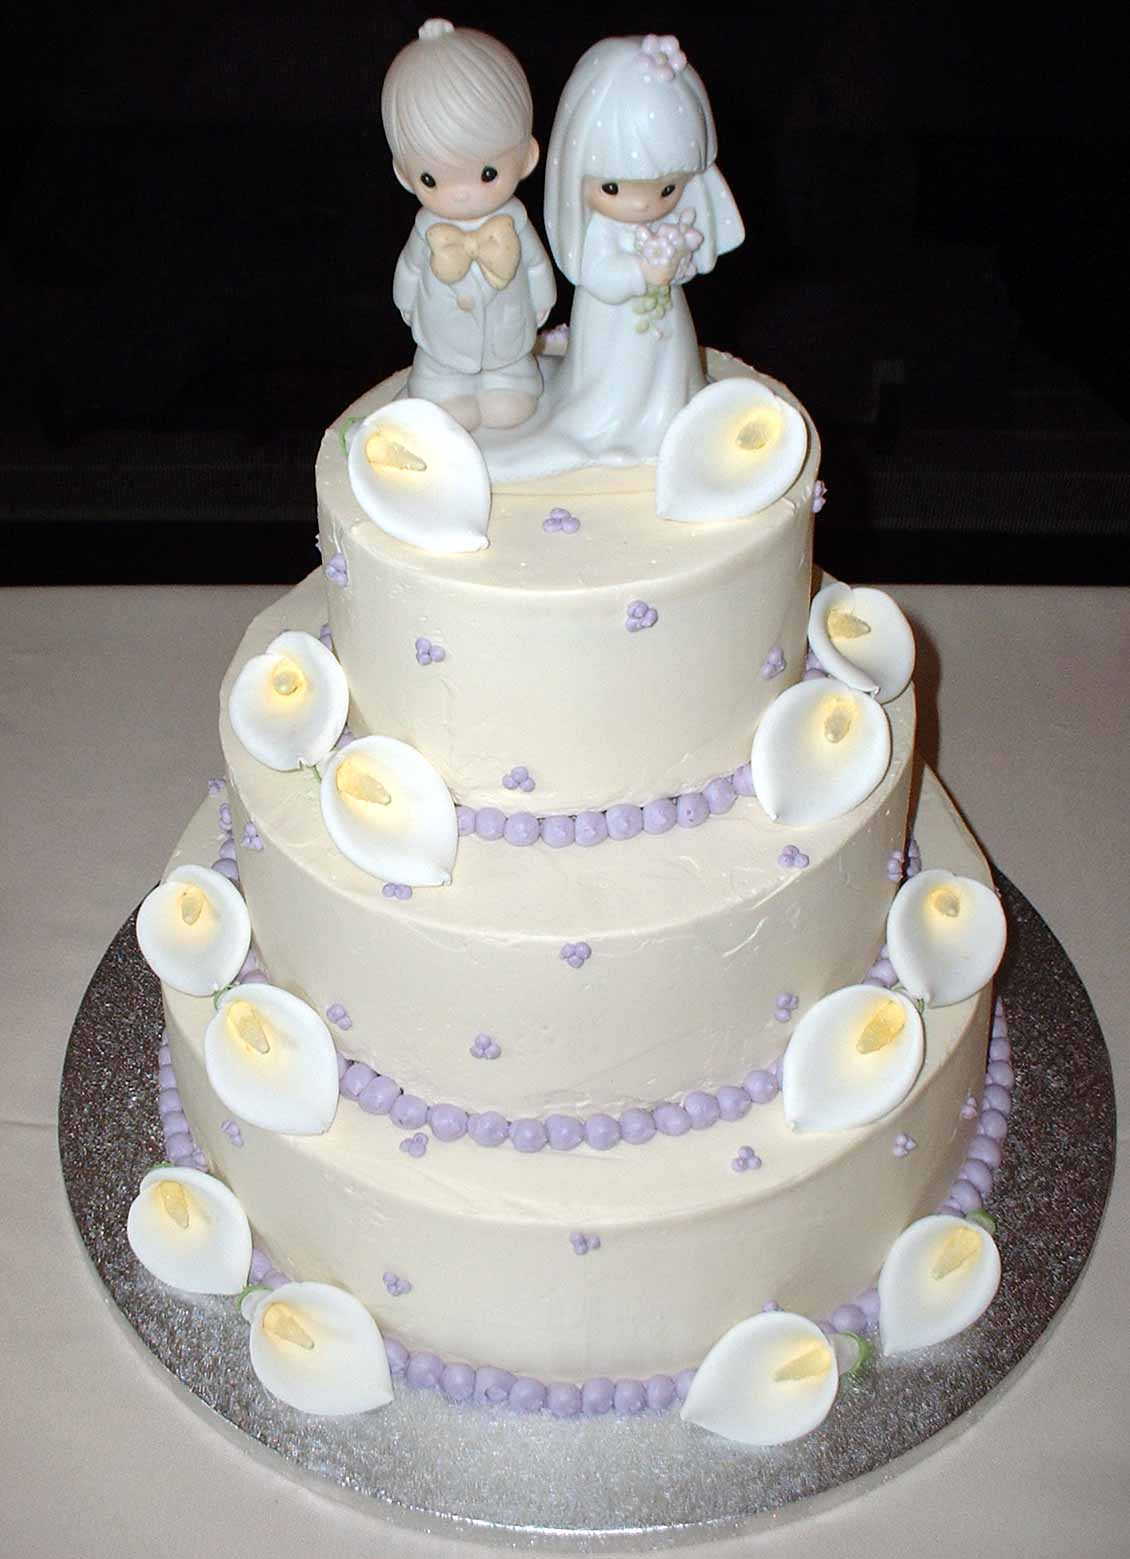 Cake Designs And Pictures : Wedding Cake Designs 2011